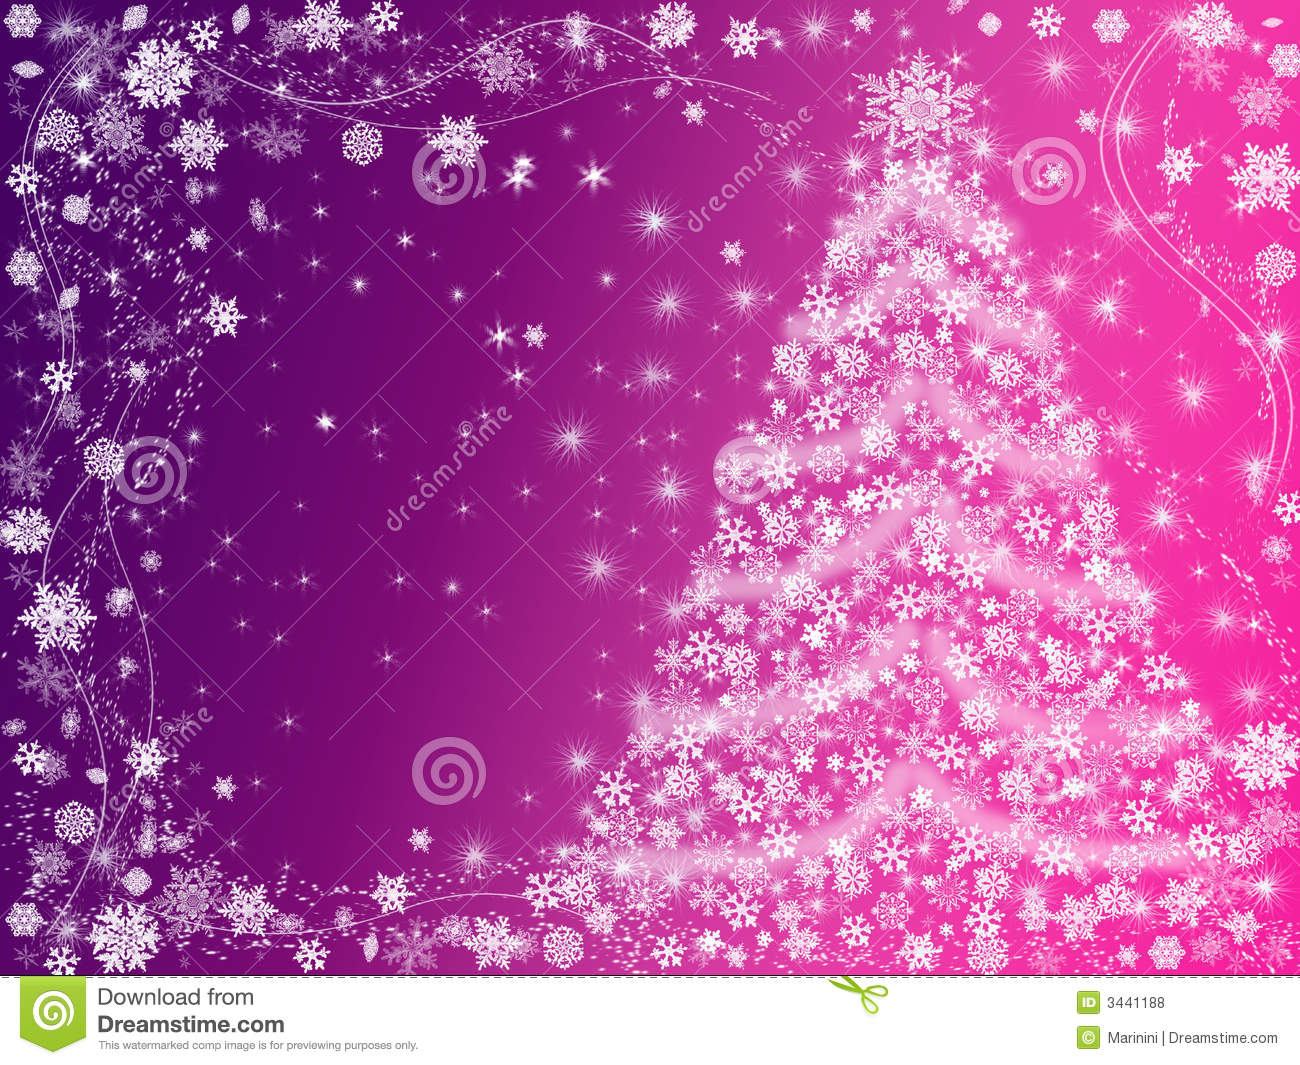 Christmas Tree Drawn By White Snowflakes Over Pink And Violet Background